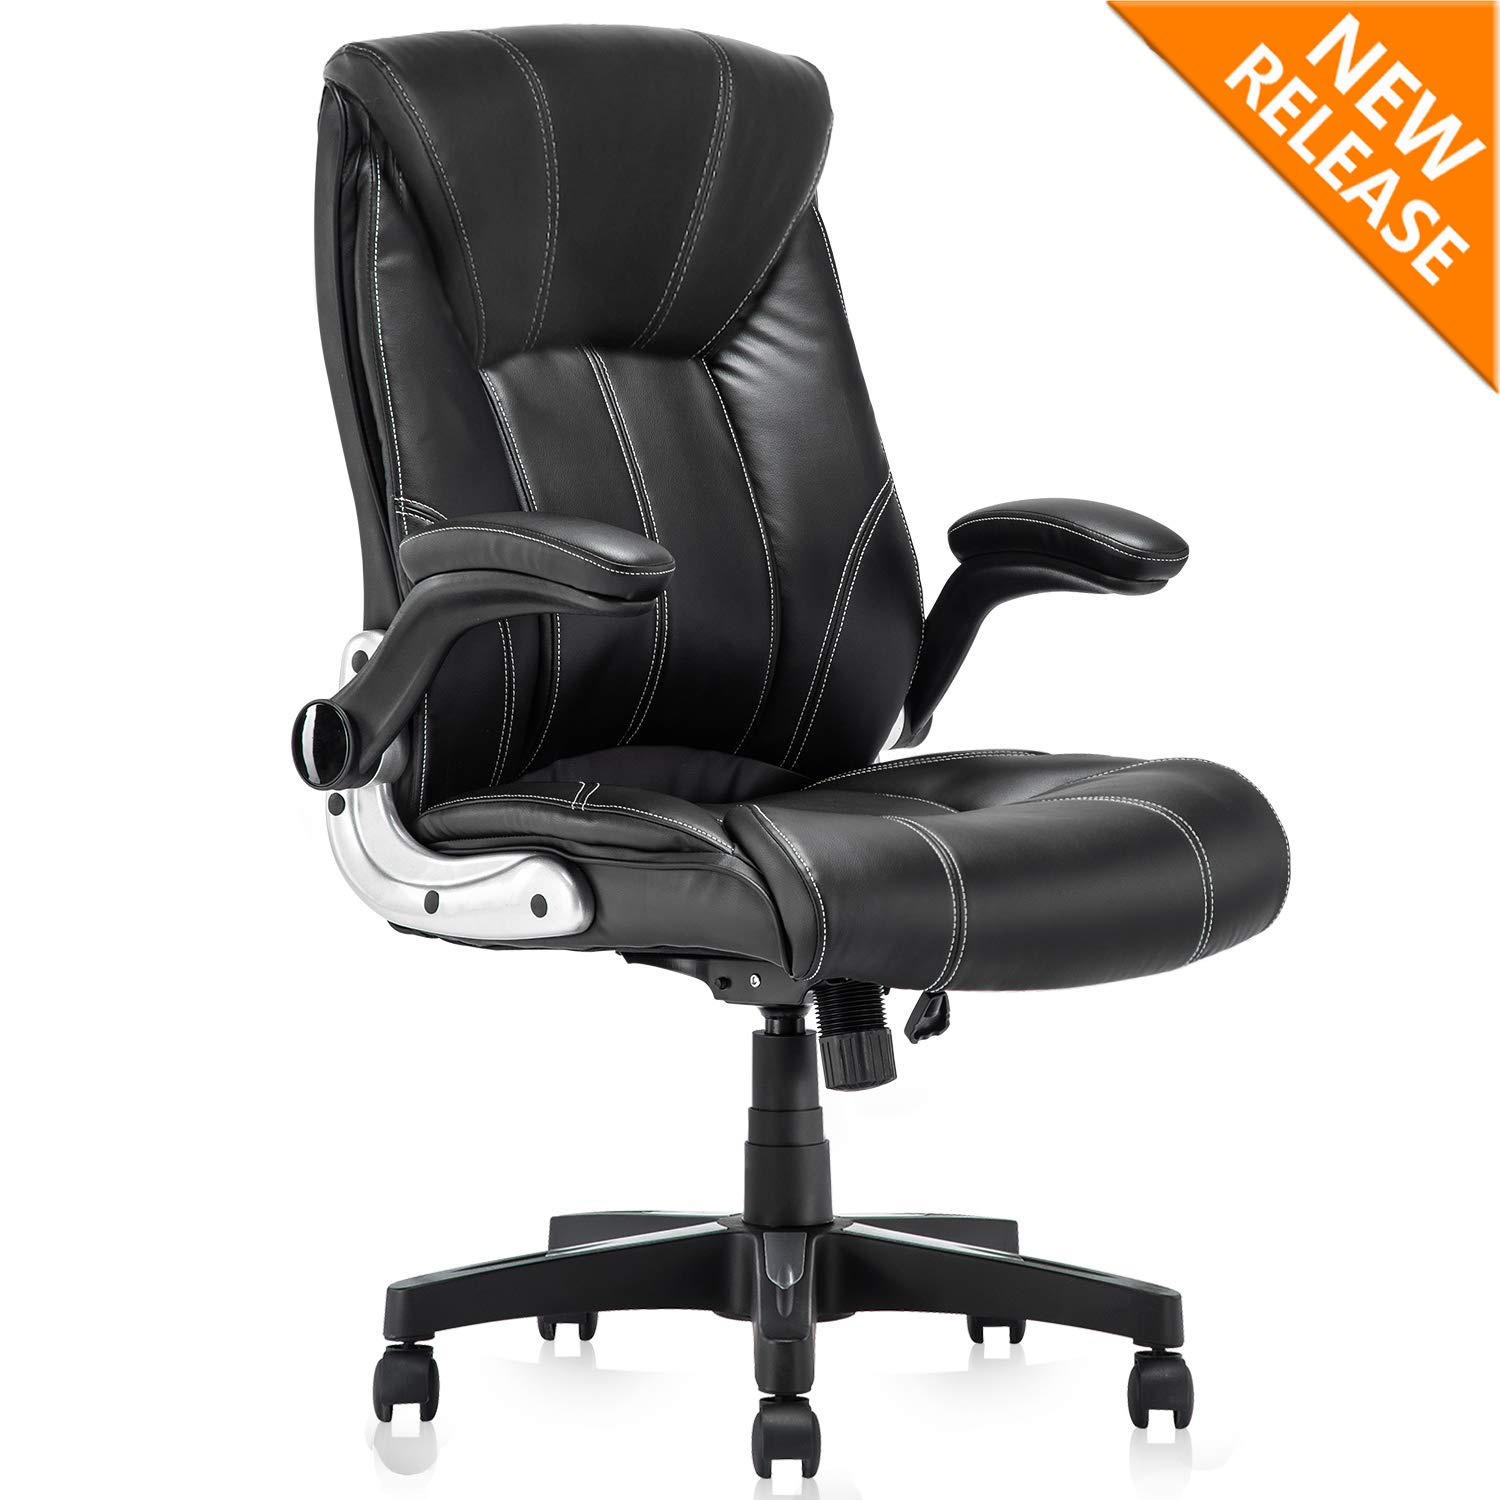 YAMASORO Leather Executive Office Chair Flip up Arm Rests,Ergonomic Chair Comfortable Massage,Computer Desk Chairs Black Task Chair with Wheels for Home Office ...